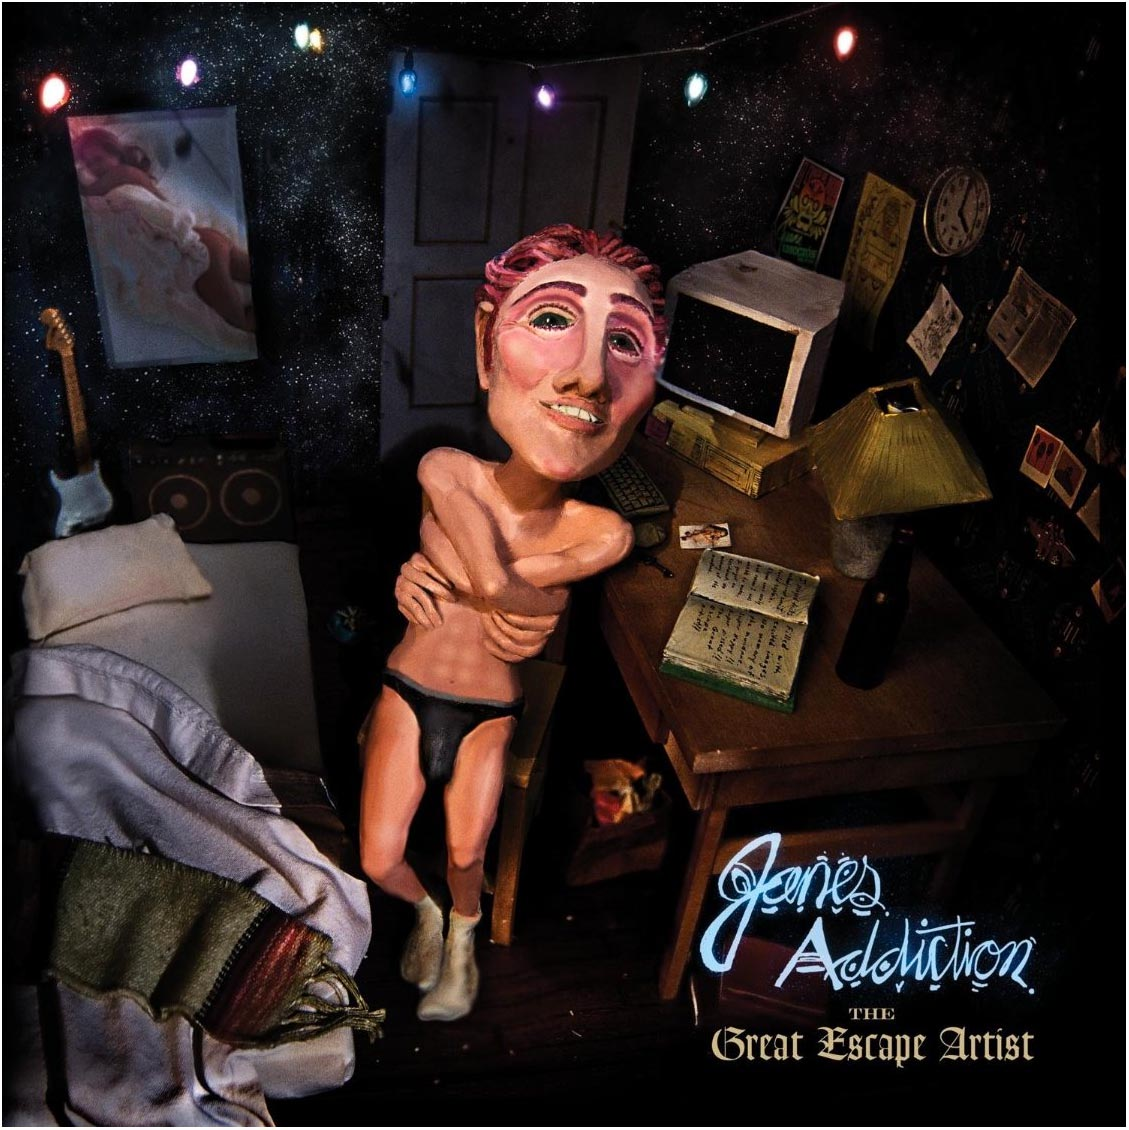 Jane's Addiction - The Great Scape Artist (2011)